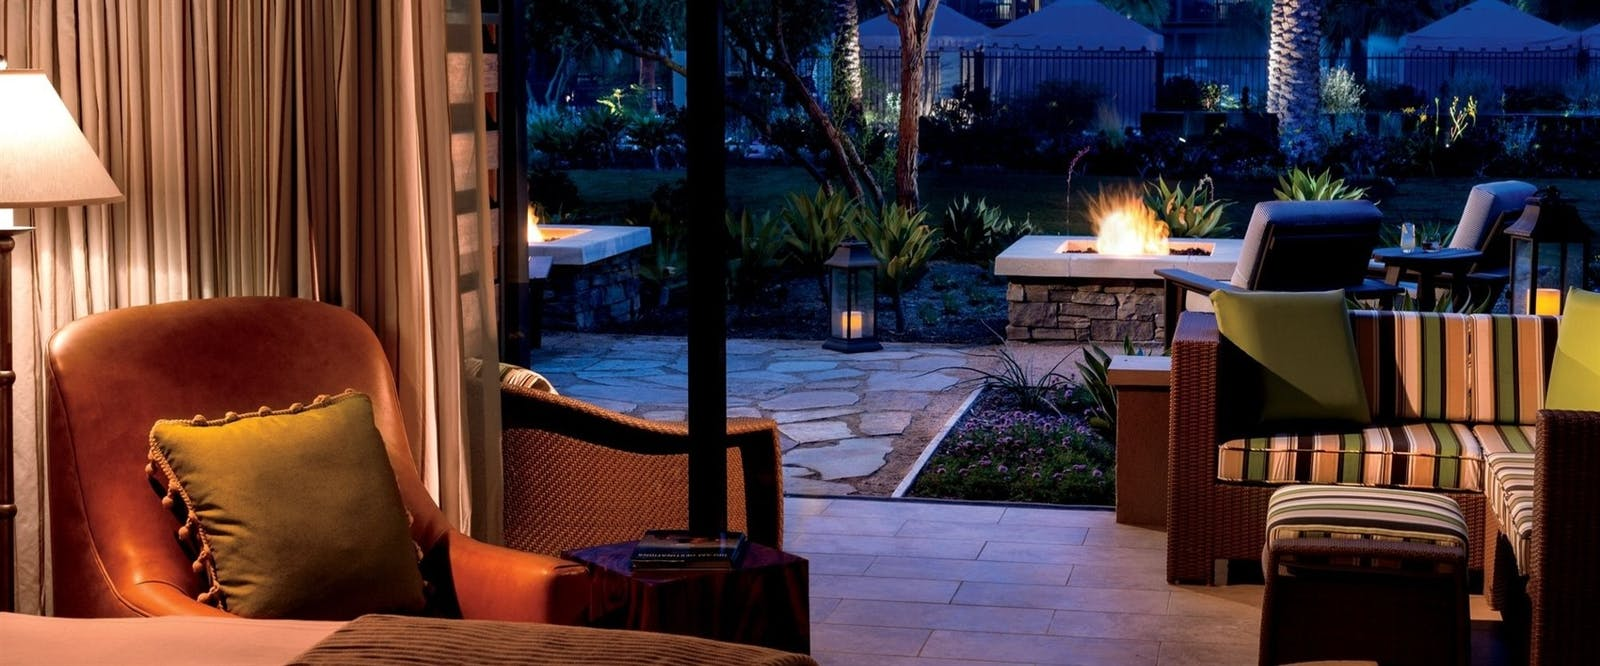 Terrace Firepit King at The Ritz-Carlton, Rancho Mirage